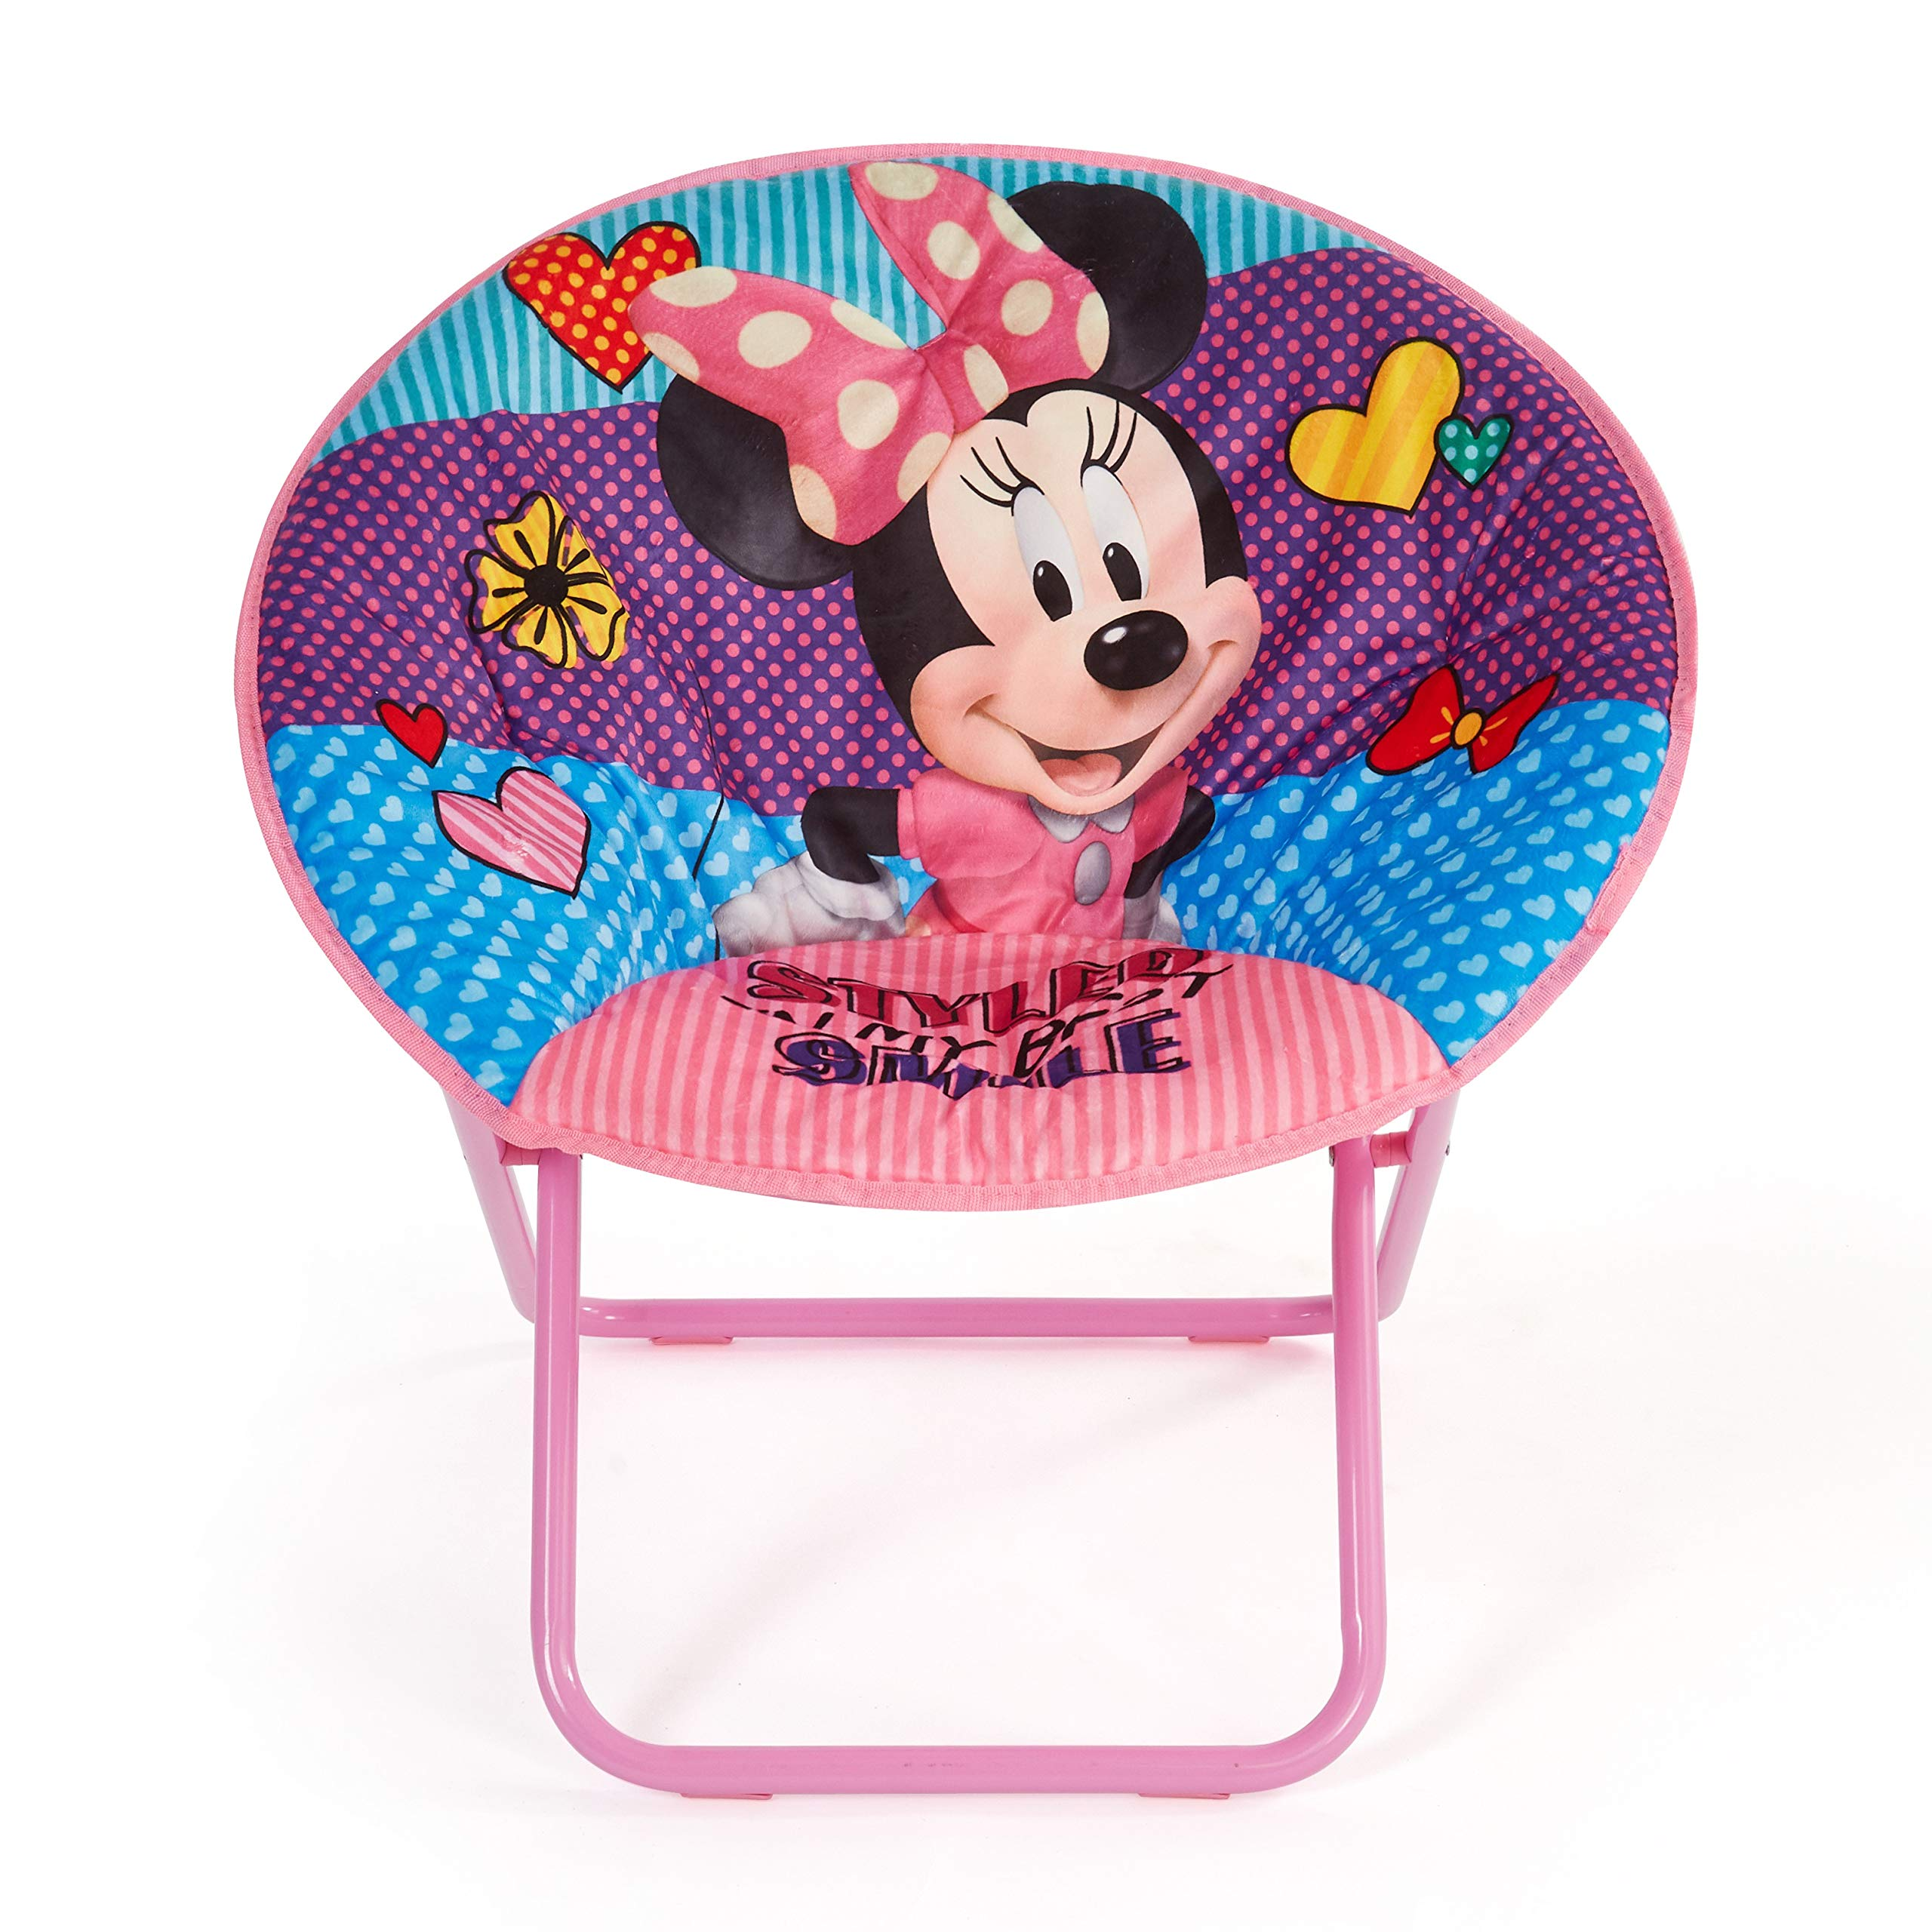 Disney Minnie Mouse 23'' Saucer Chair, Pink by Disney